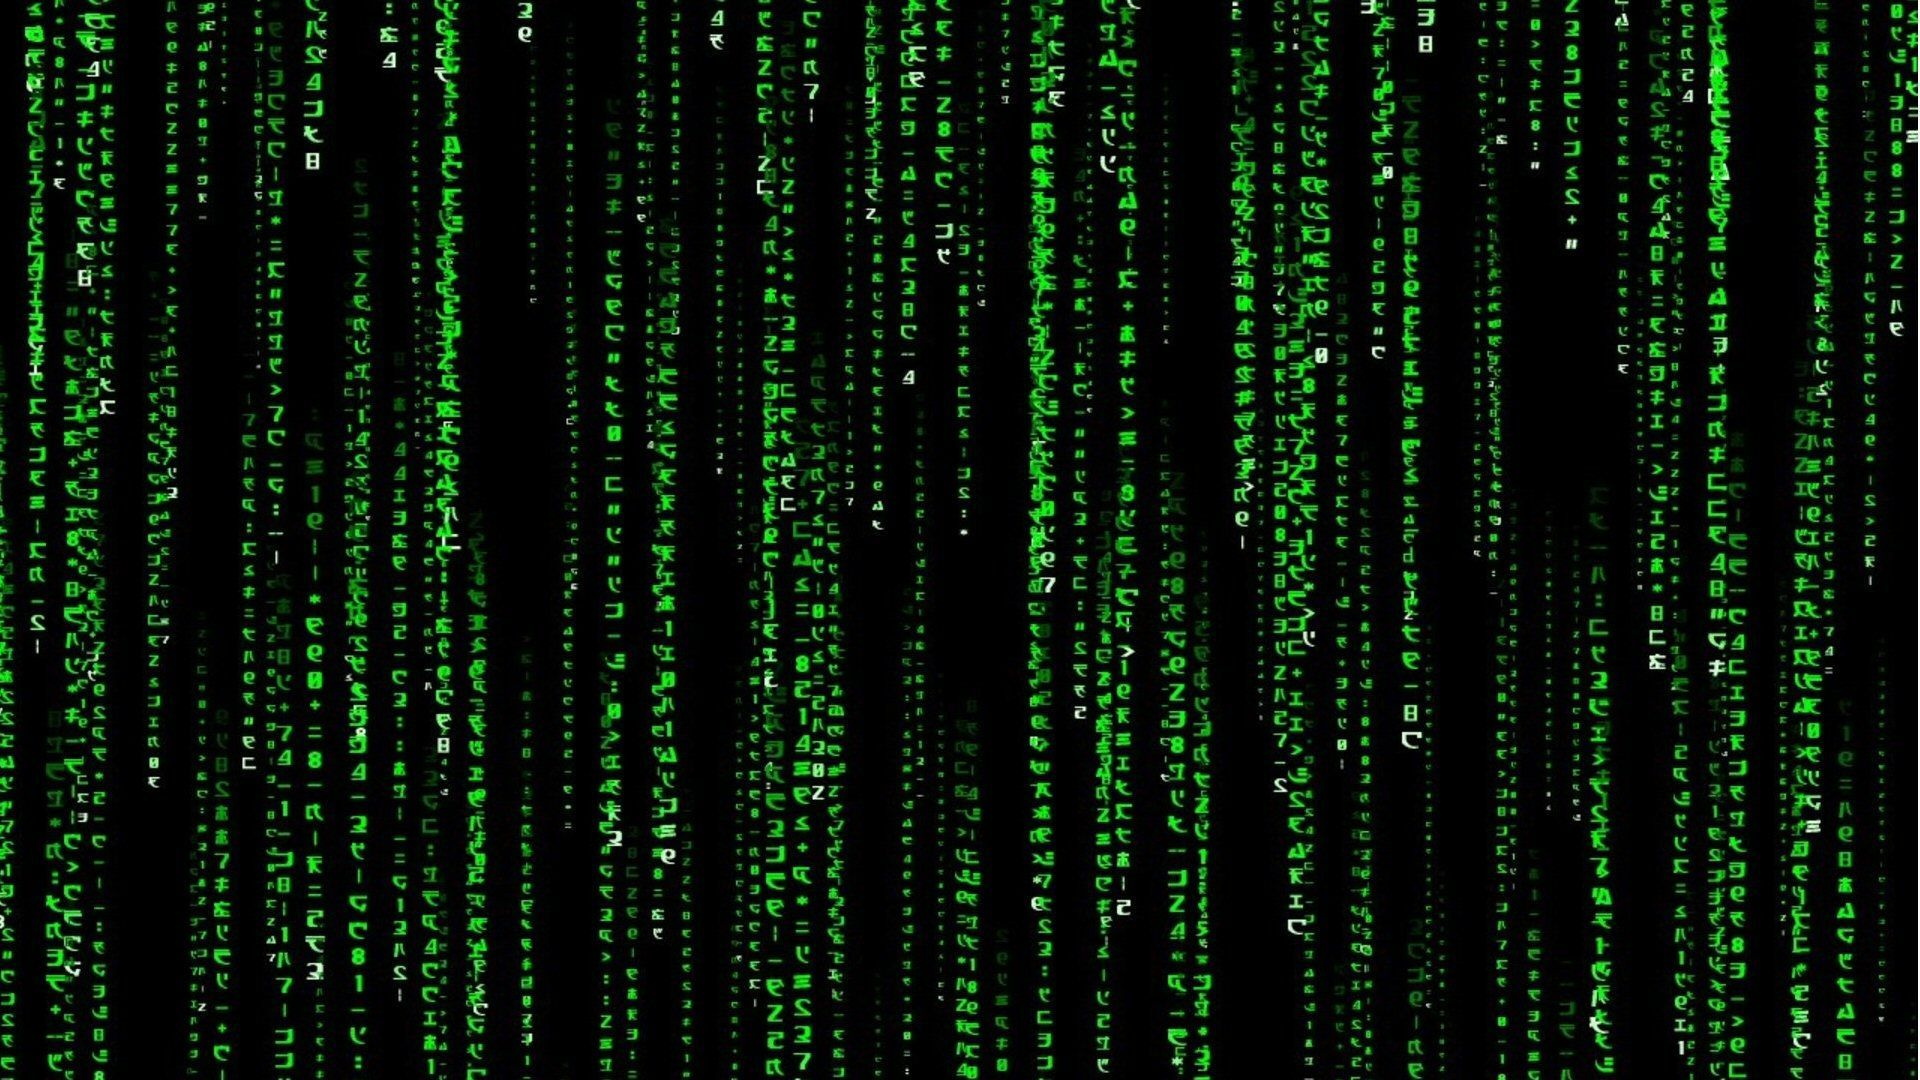 45 Animated Binary Code Wallpapers Download At Wallpaperbro Code Wallpaper Science Background Live Wallpapers